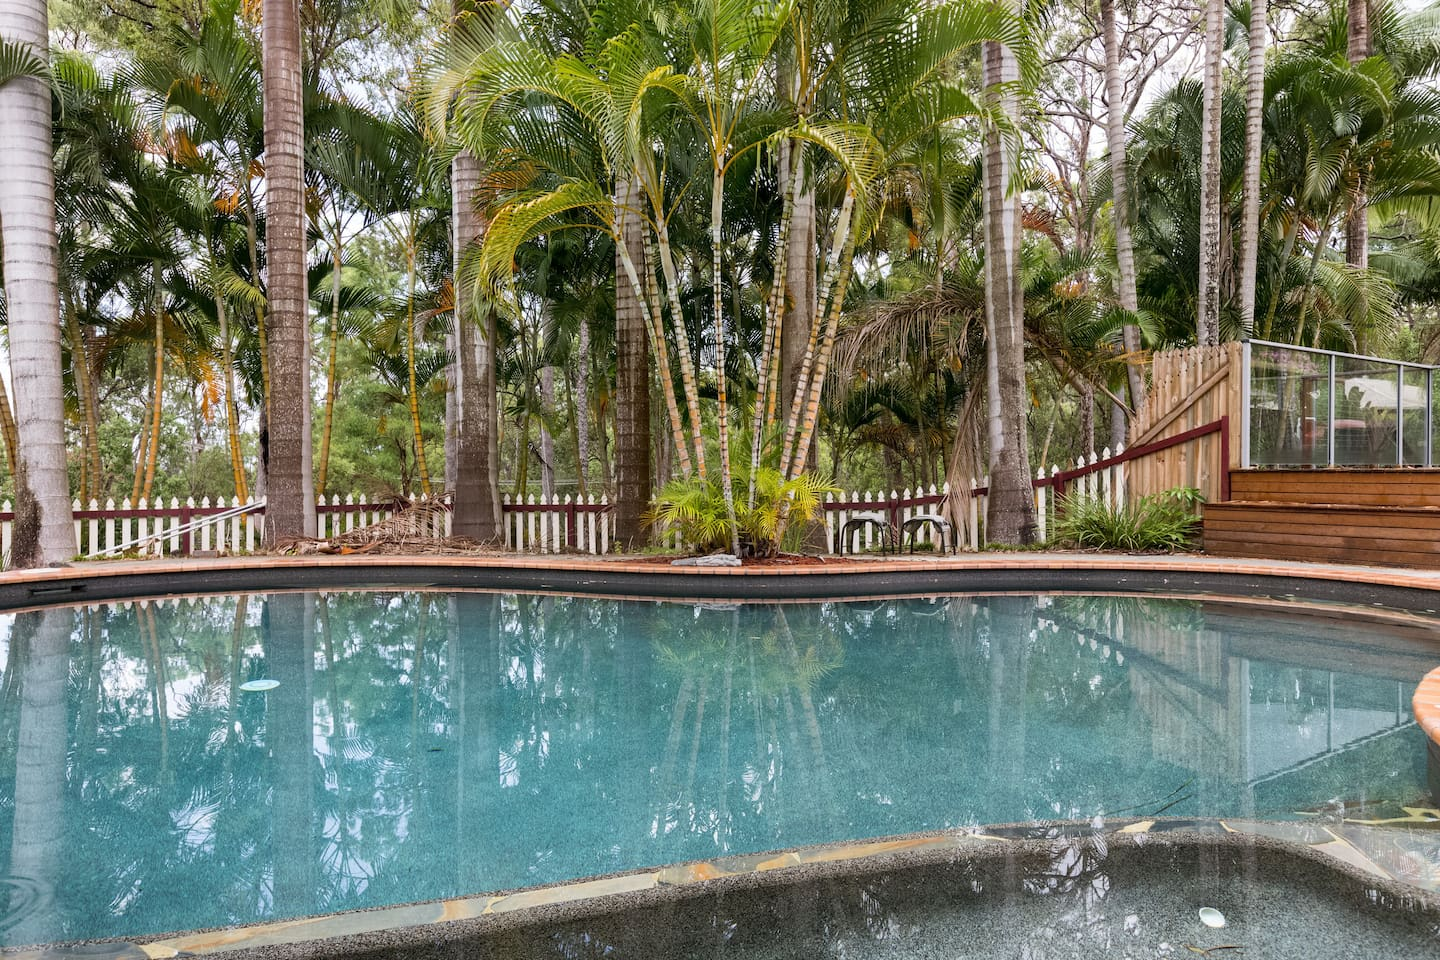 You can use the refreshing pool, and the spa is always set to 38 degrees. Great in summer and winter.